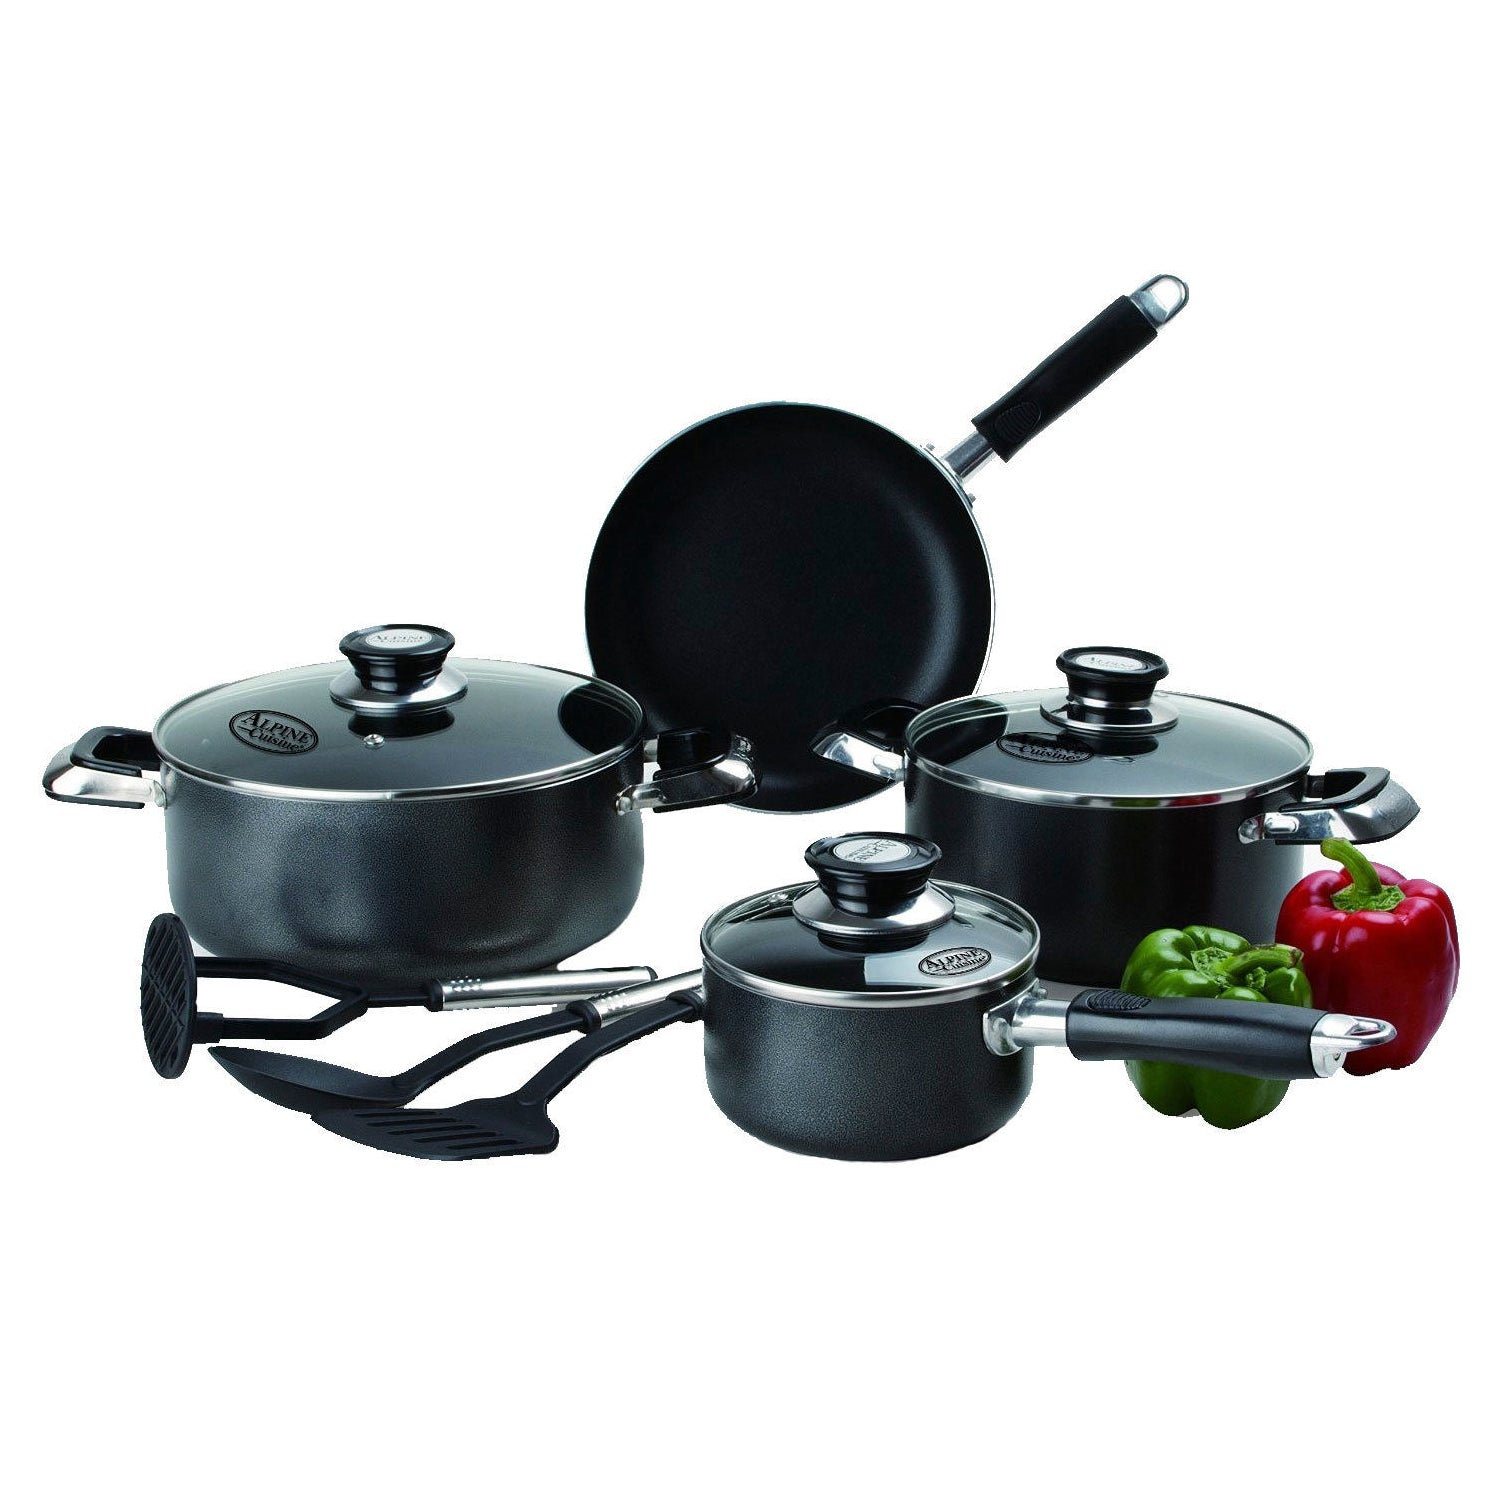 Imperial Home Nonstick Cookware Sets - 10 Pc Black Pots and Pans Set PTFE and PFOA Safe Pots Pans Set